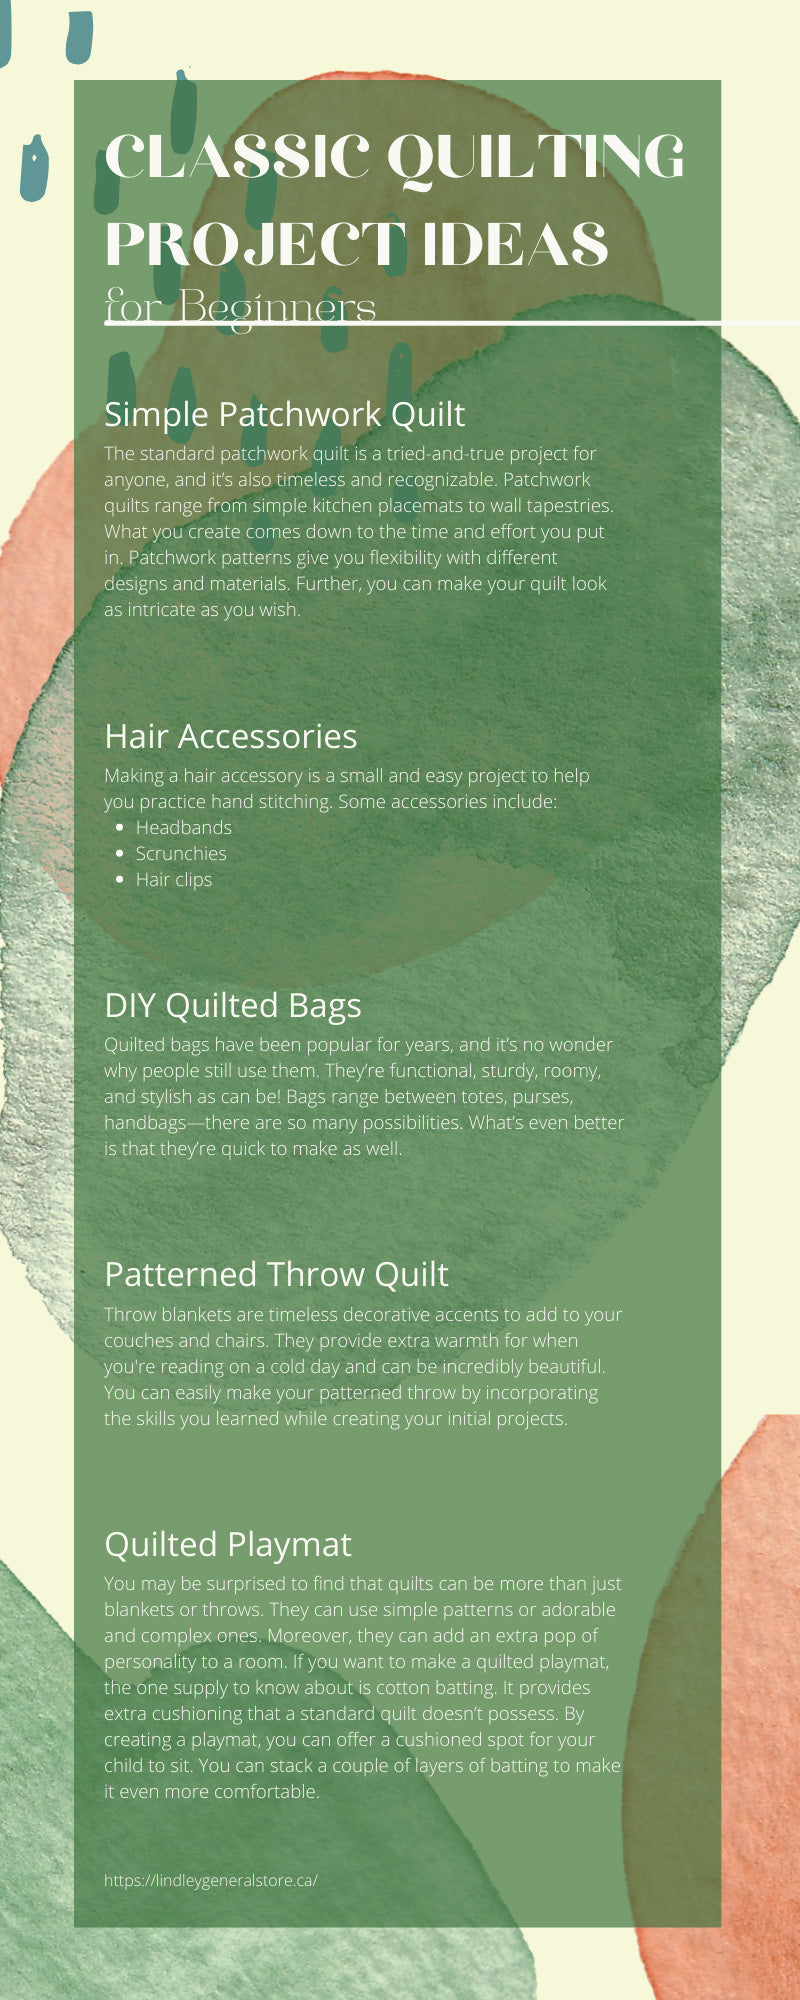 Classic Quilting Project Ideas for Beginners